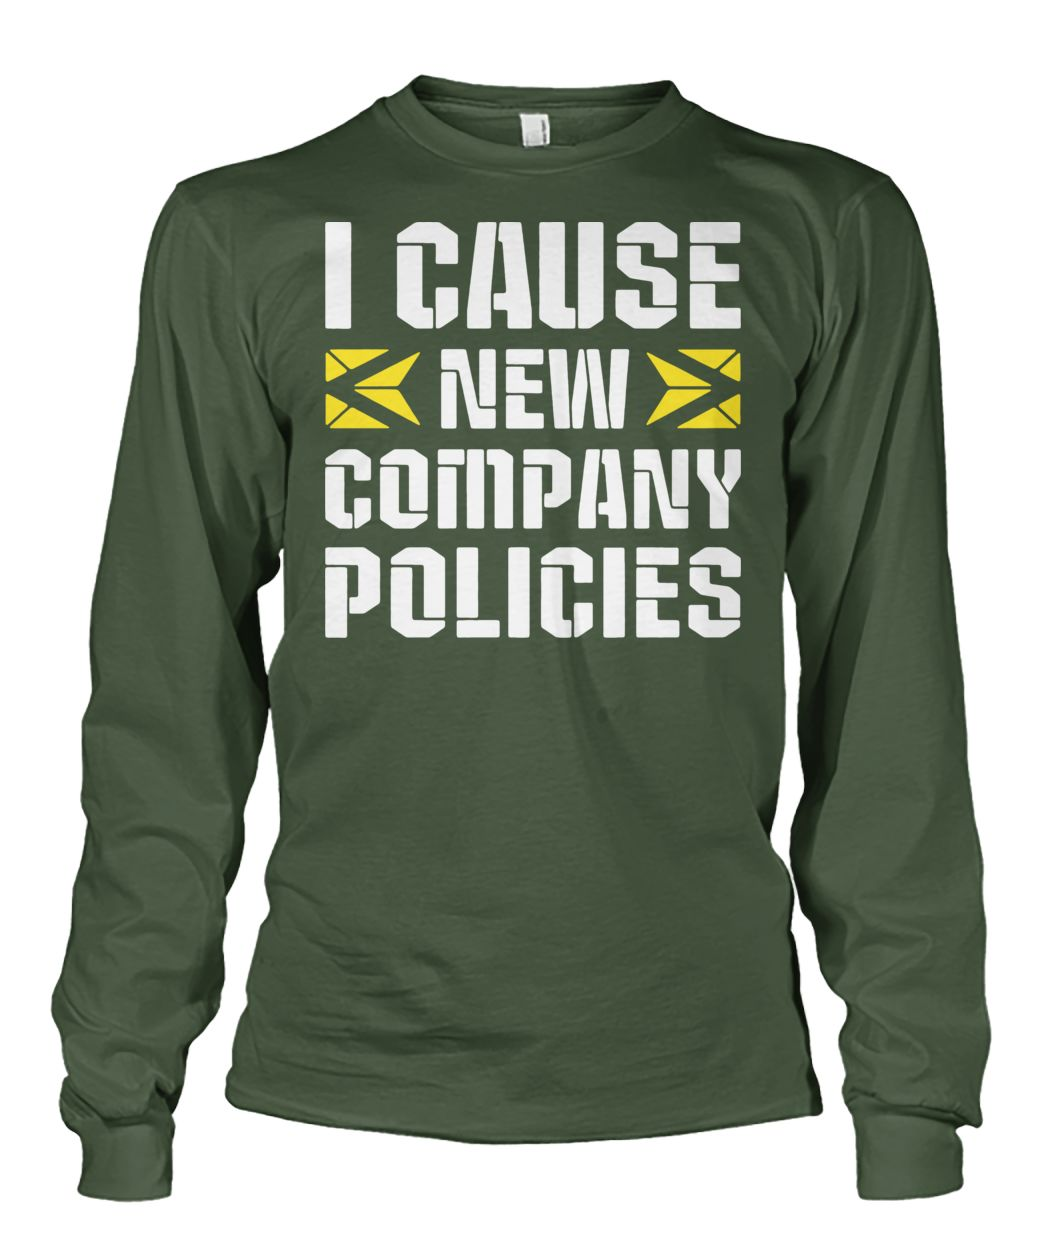 I cause new company policies unisex long sleeve